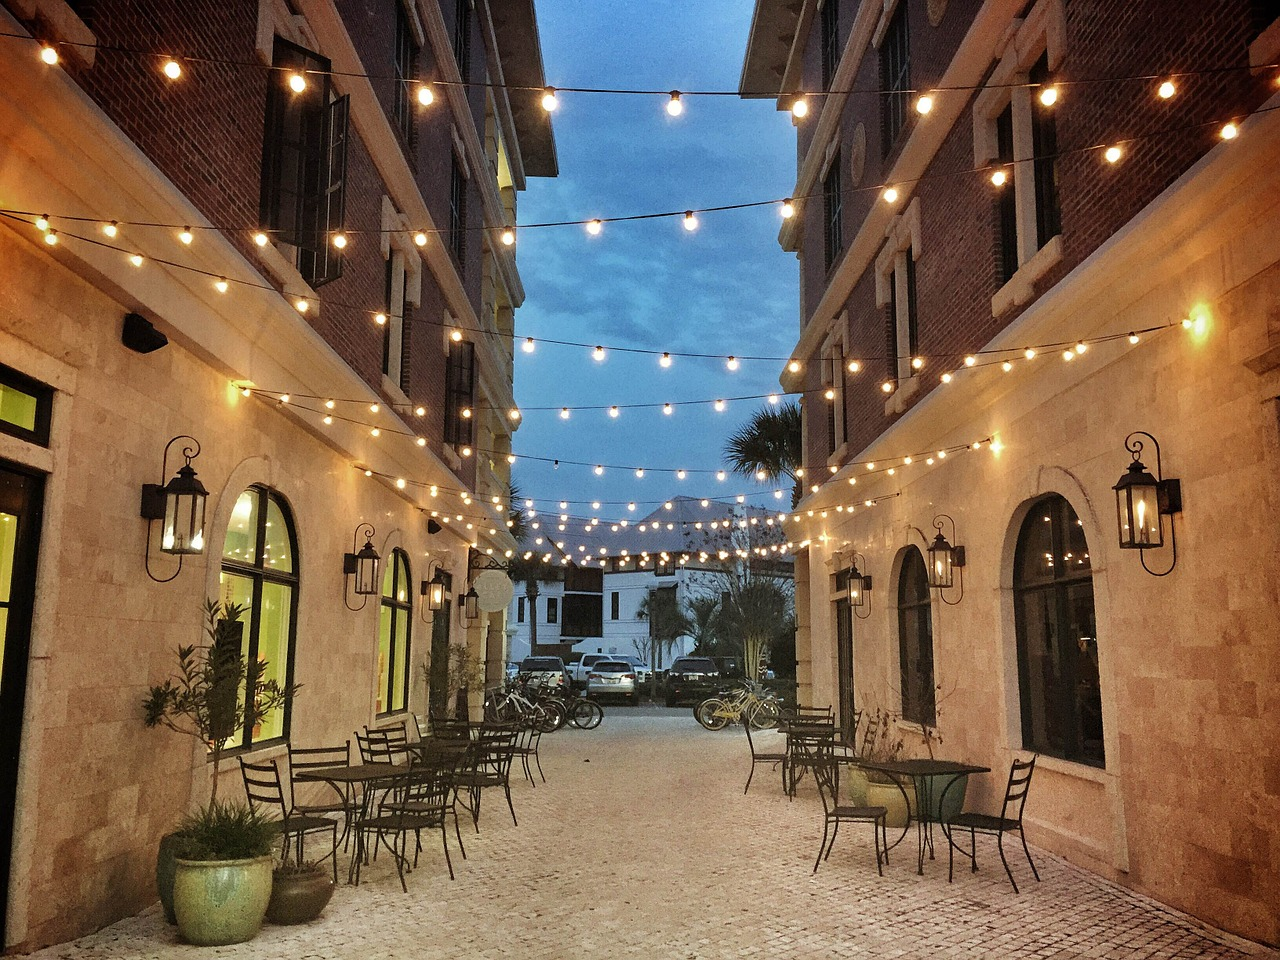 courtyard, white lights, cafe dining, al fresco dining, brick and limestone, restored property